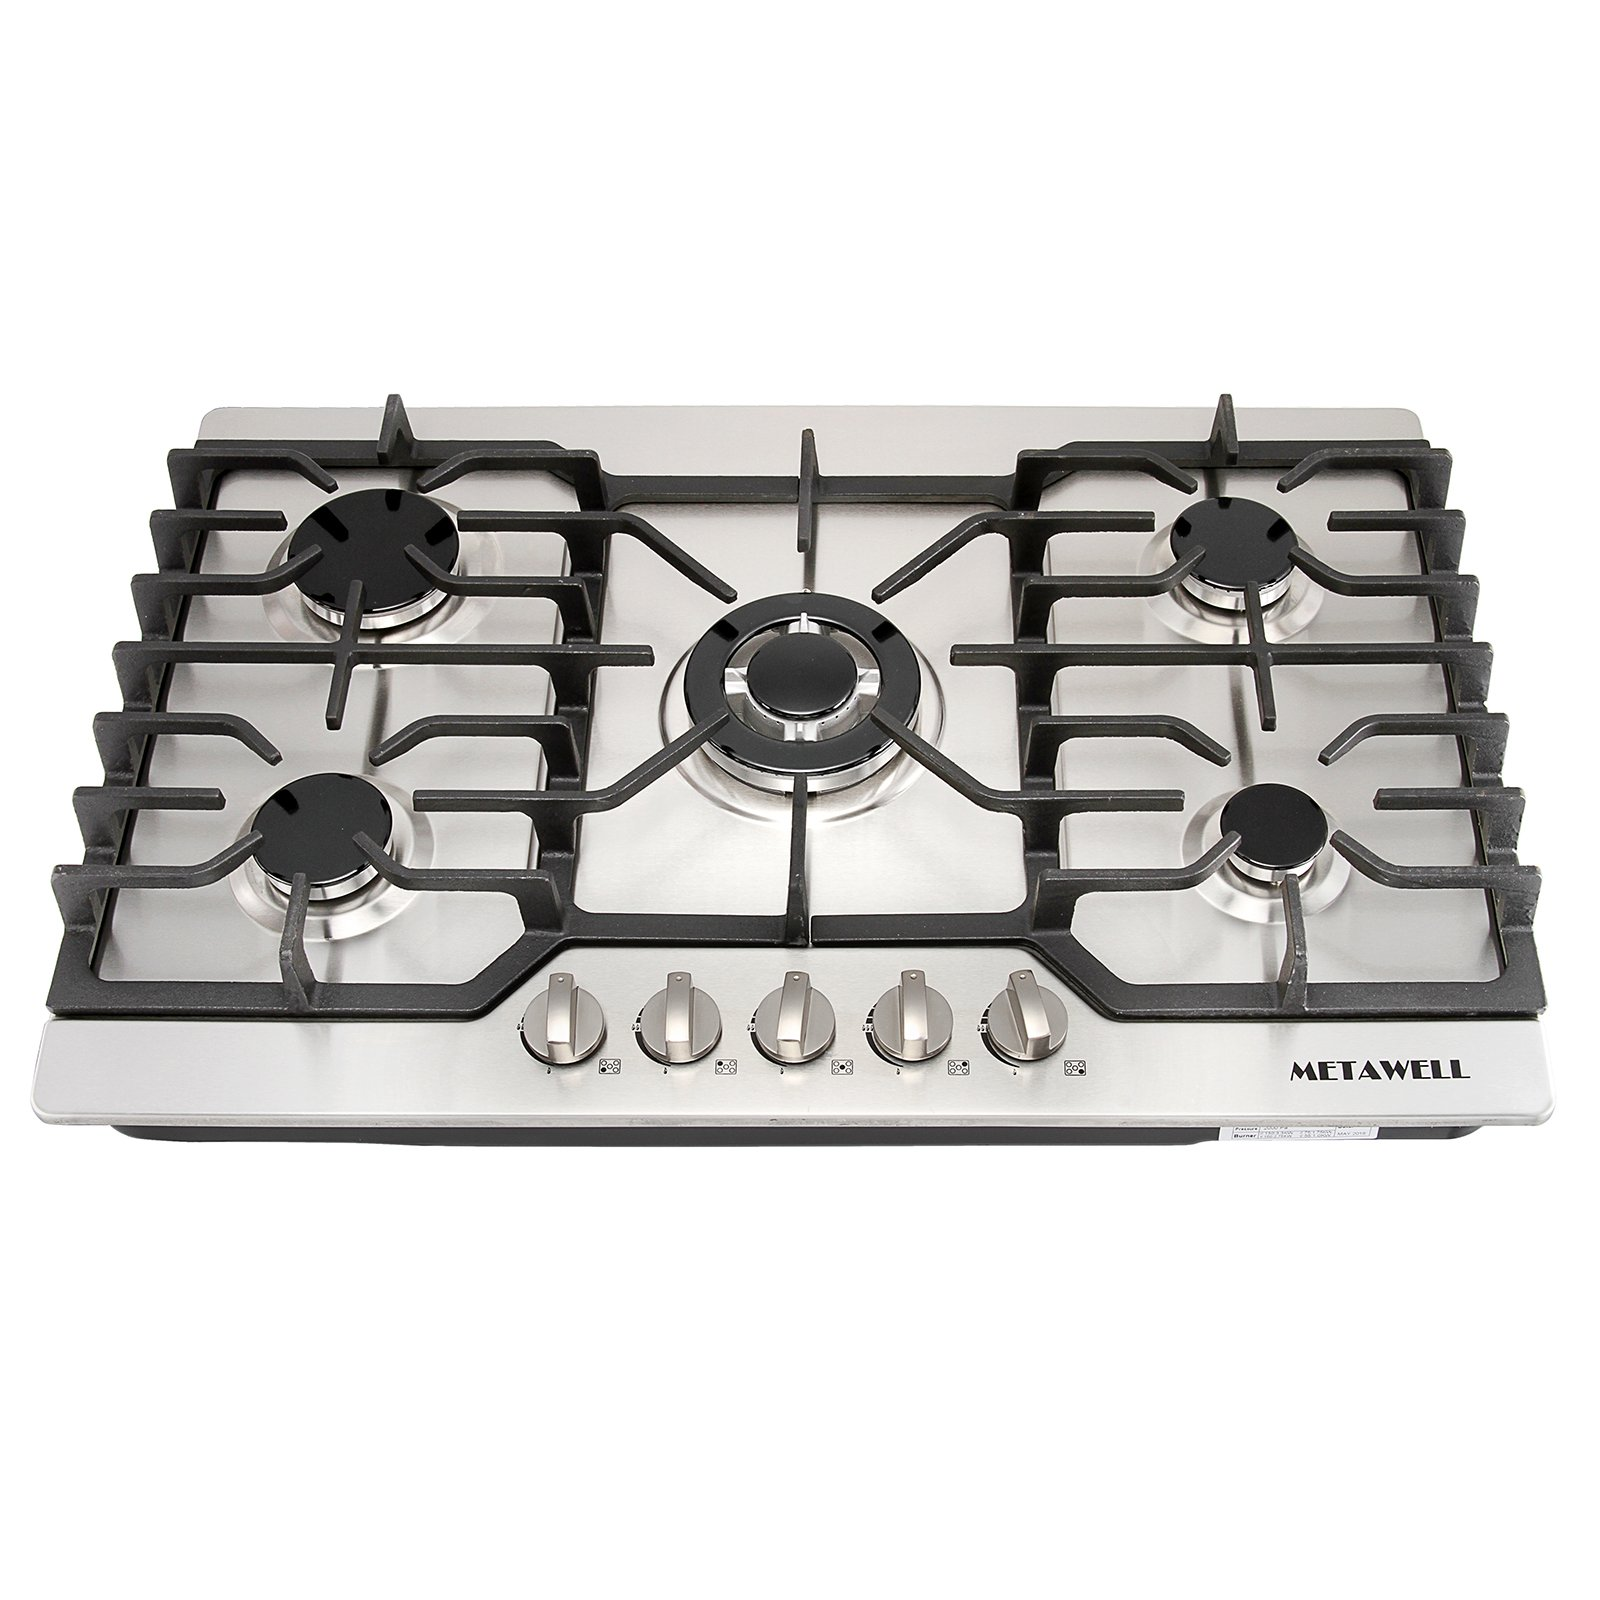 Get Quotations Metawell 30 Stainless Steel Gold Burner Built In 5 Stoves Natural Gas Cooktops Cooker